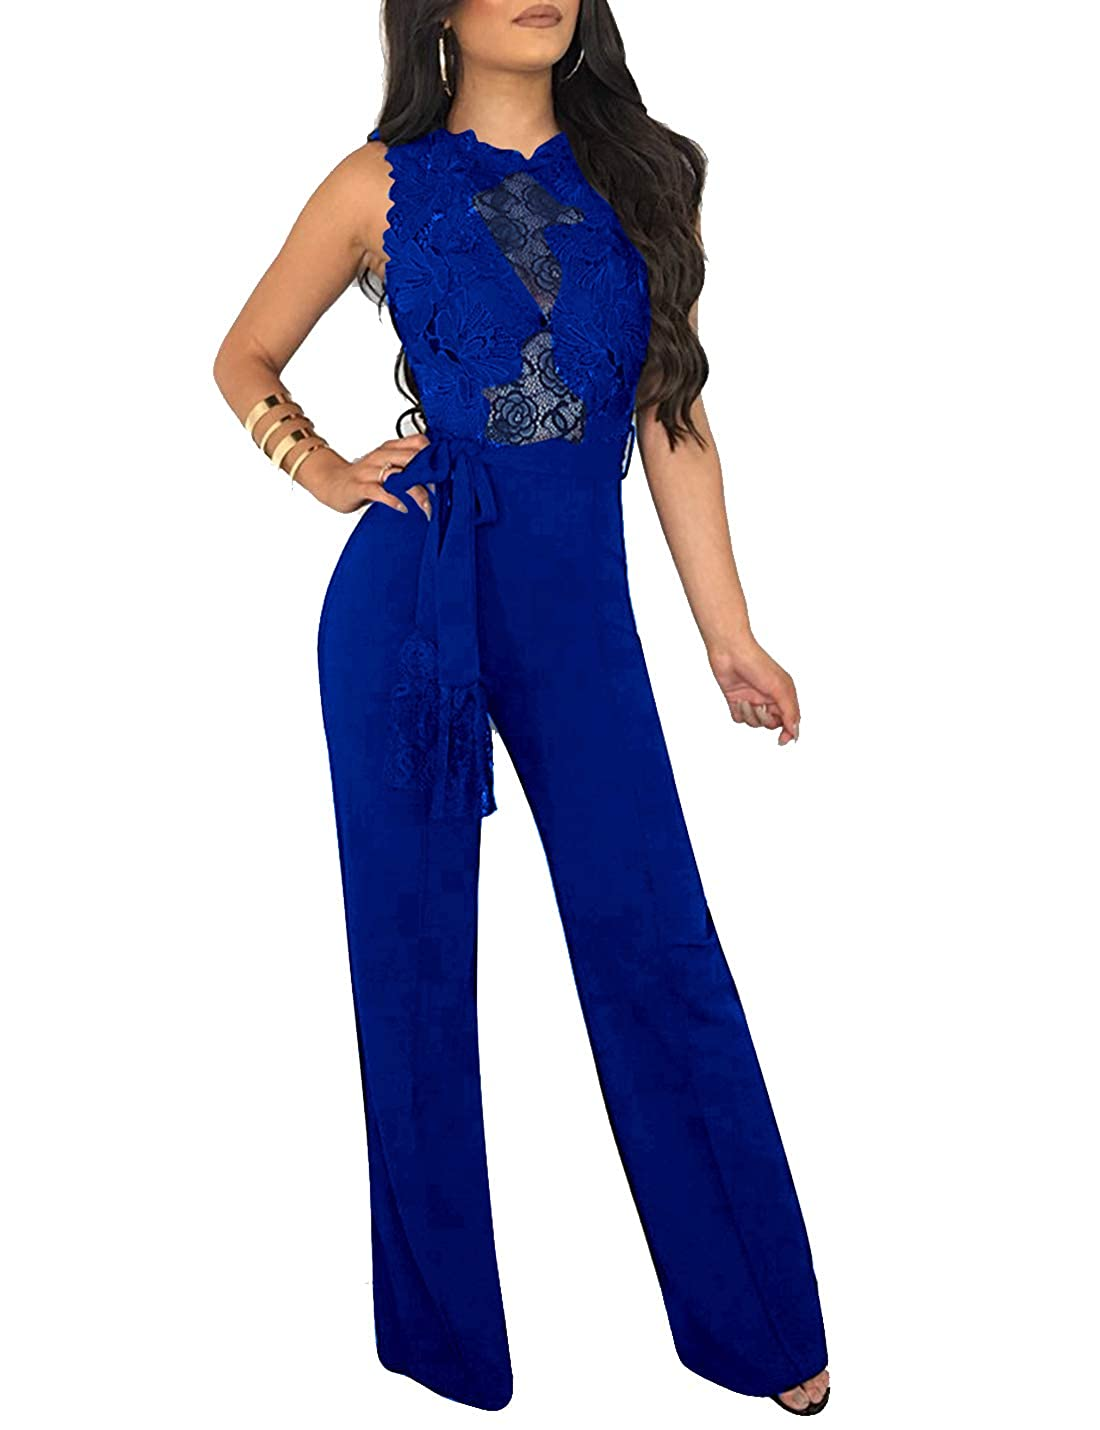 Women Elegant Jumpsuits Rompers Sleeveless Casual Palazzo Pants Overall